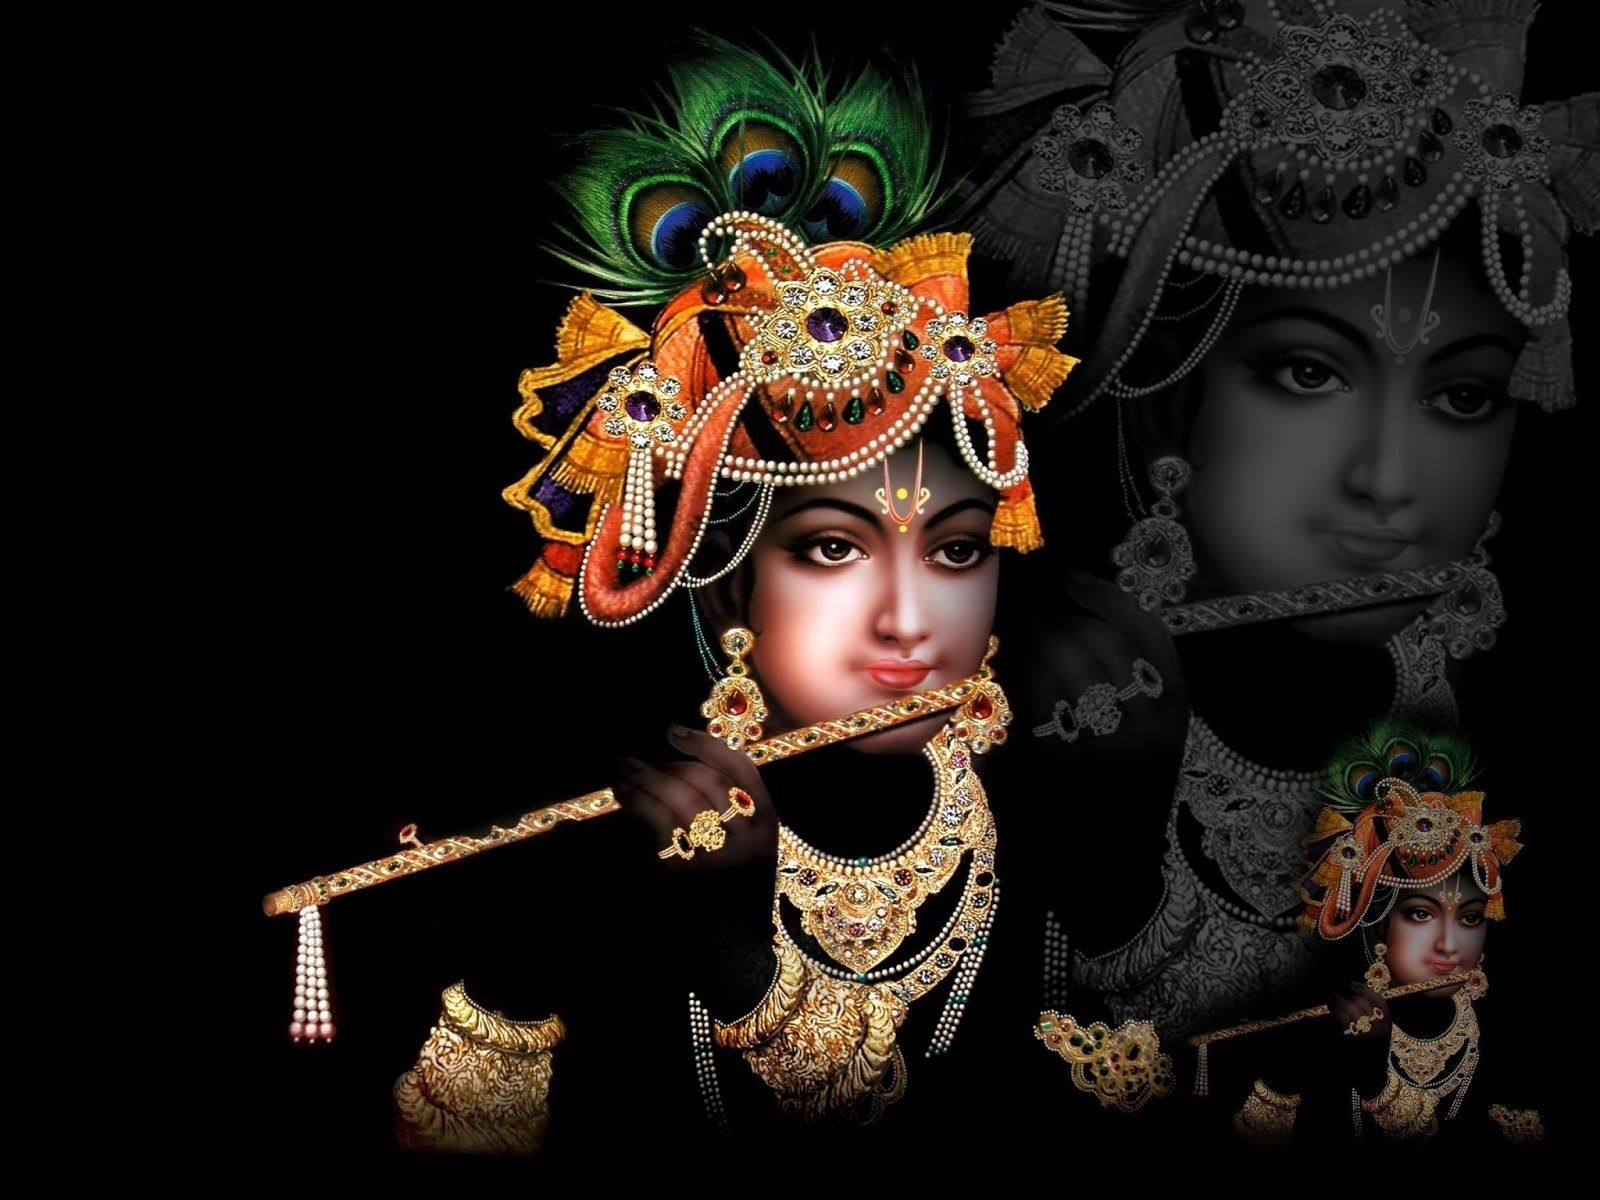 12 Best Krishna Hd Mobile And Laptop Wallpaper Free Download Best Devotional Full Hd Wallp Lord Krishna Wallpapers Krishna Wallpaper Radhe Krishna Wallpapers